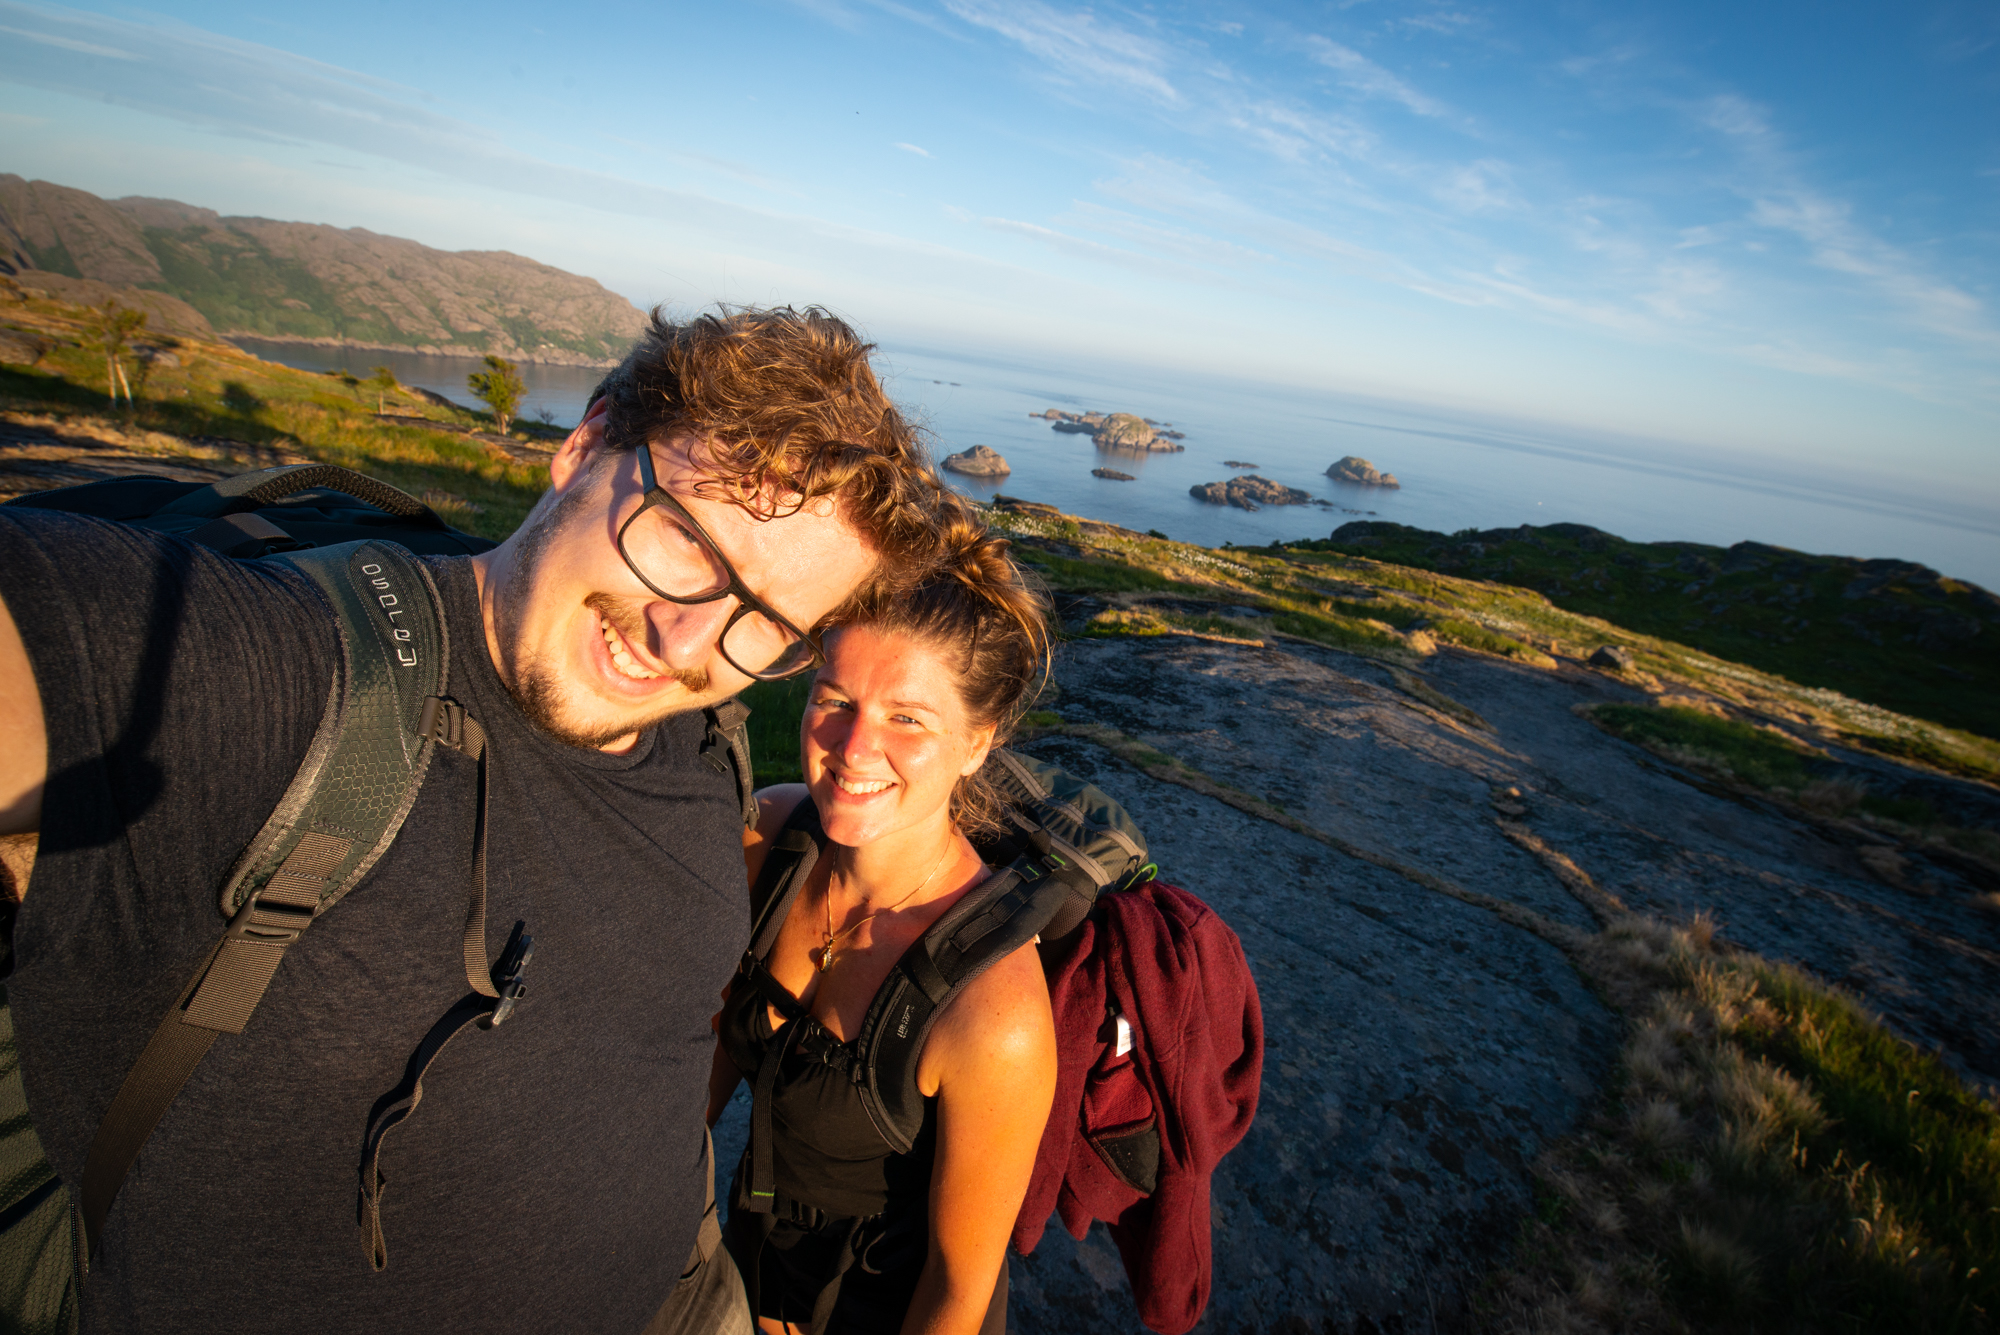 Ellis&me hiking with a sunset and the ocean on the background. Sokndal Norway.